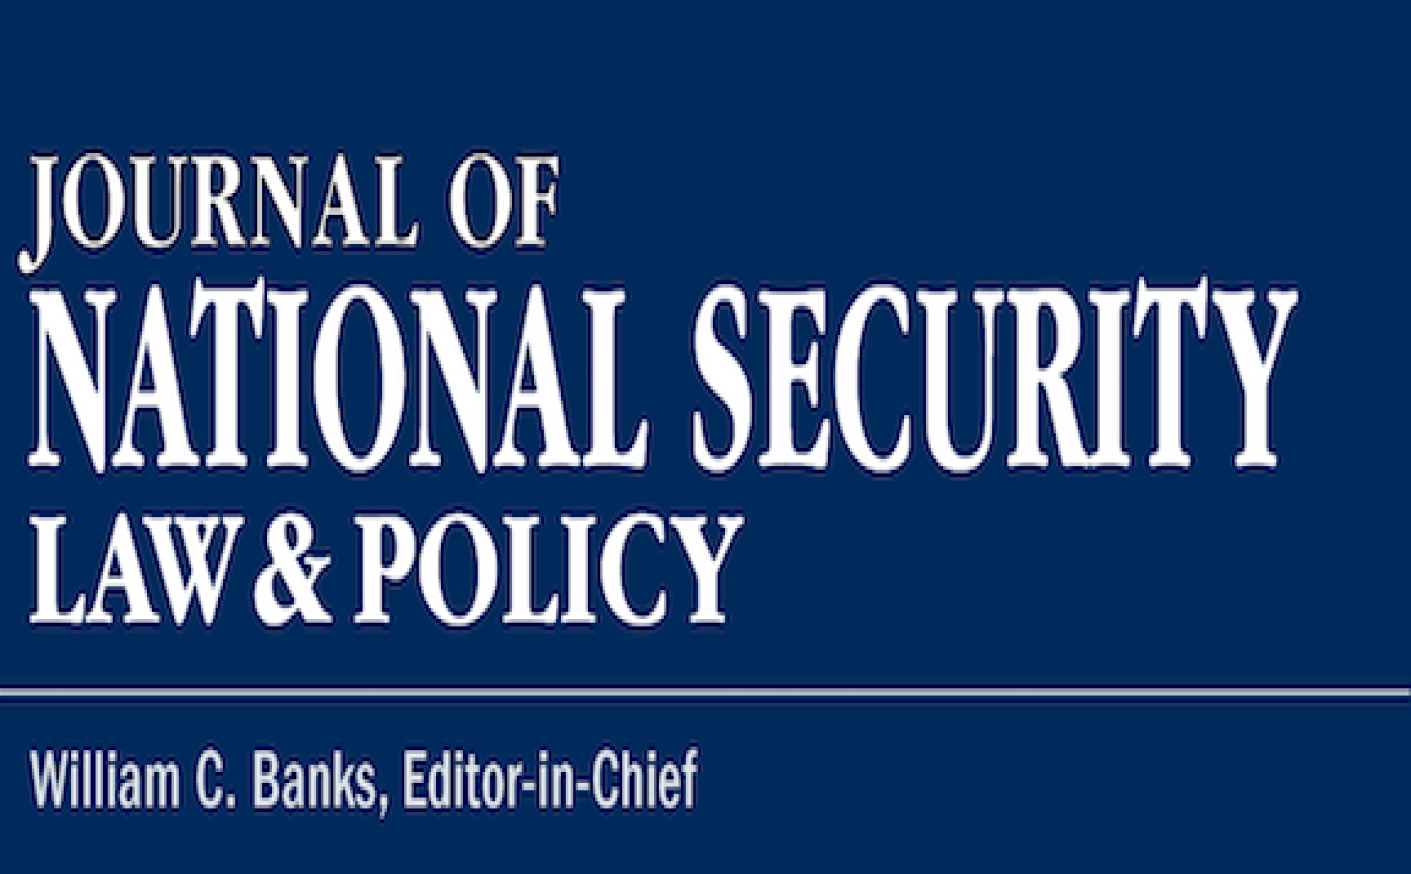 Journal of national security law & policy logo